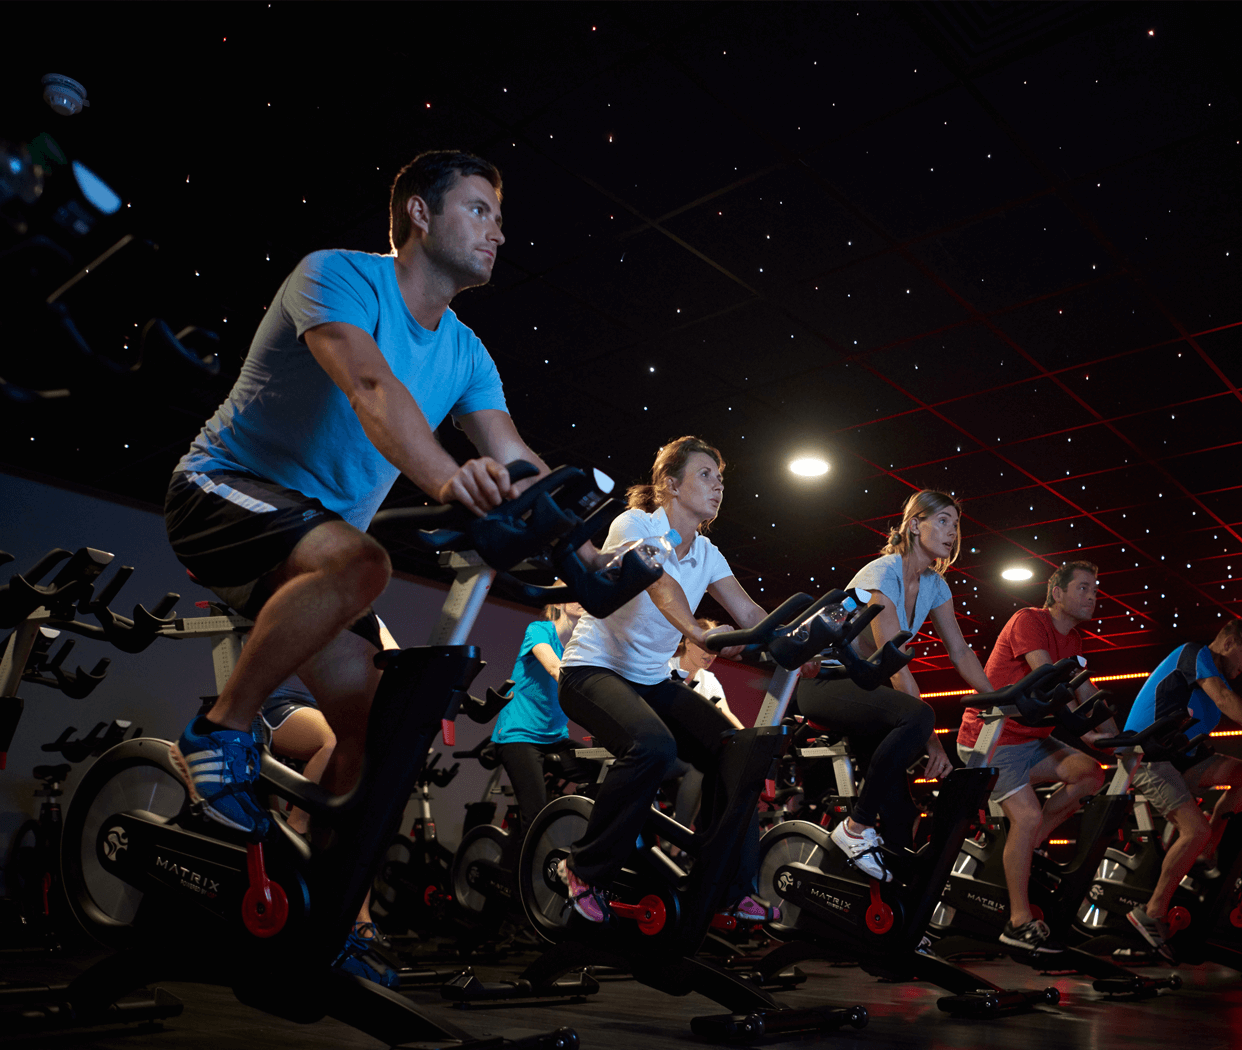 Sufferfest - Local Hero - Virtual® Studio - Race Simulation